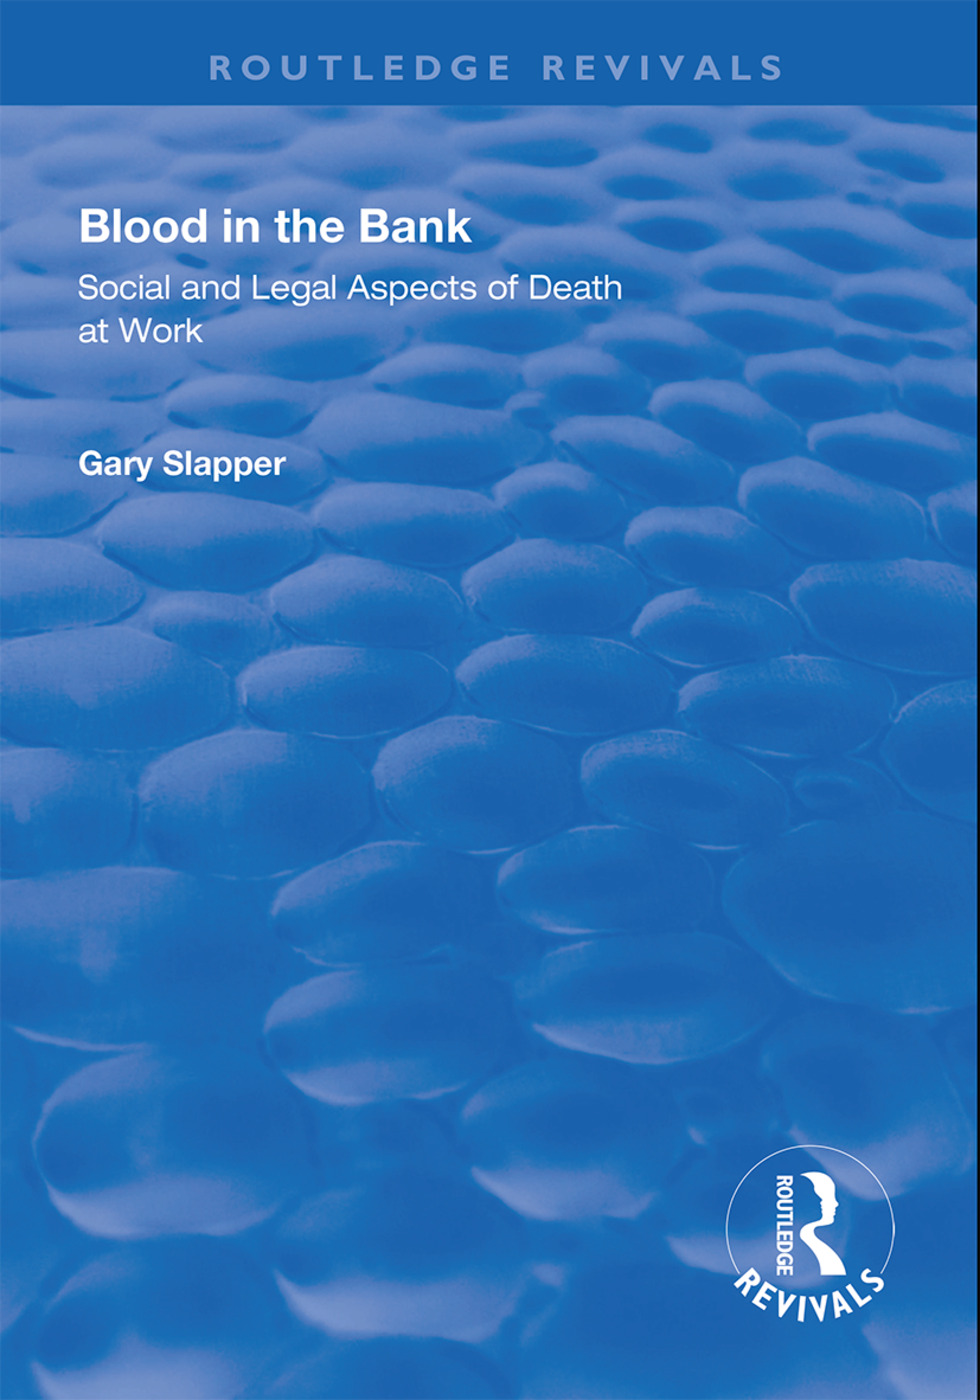 Blood in the Bank: Social and Legal Aspects of Death at Work book cover